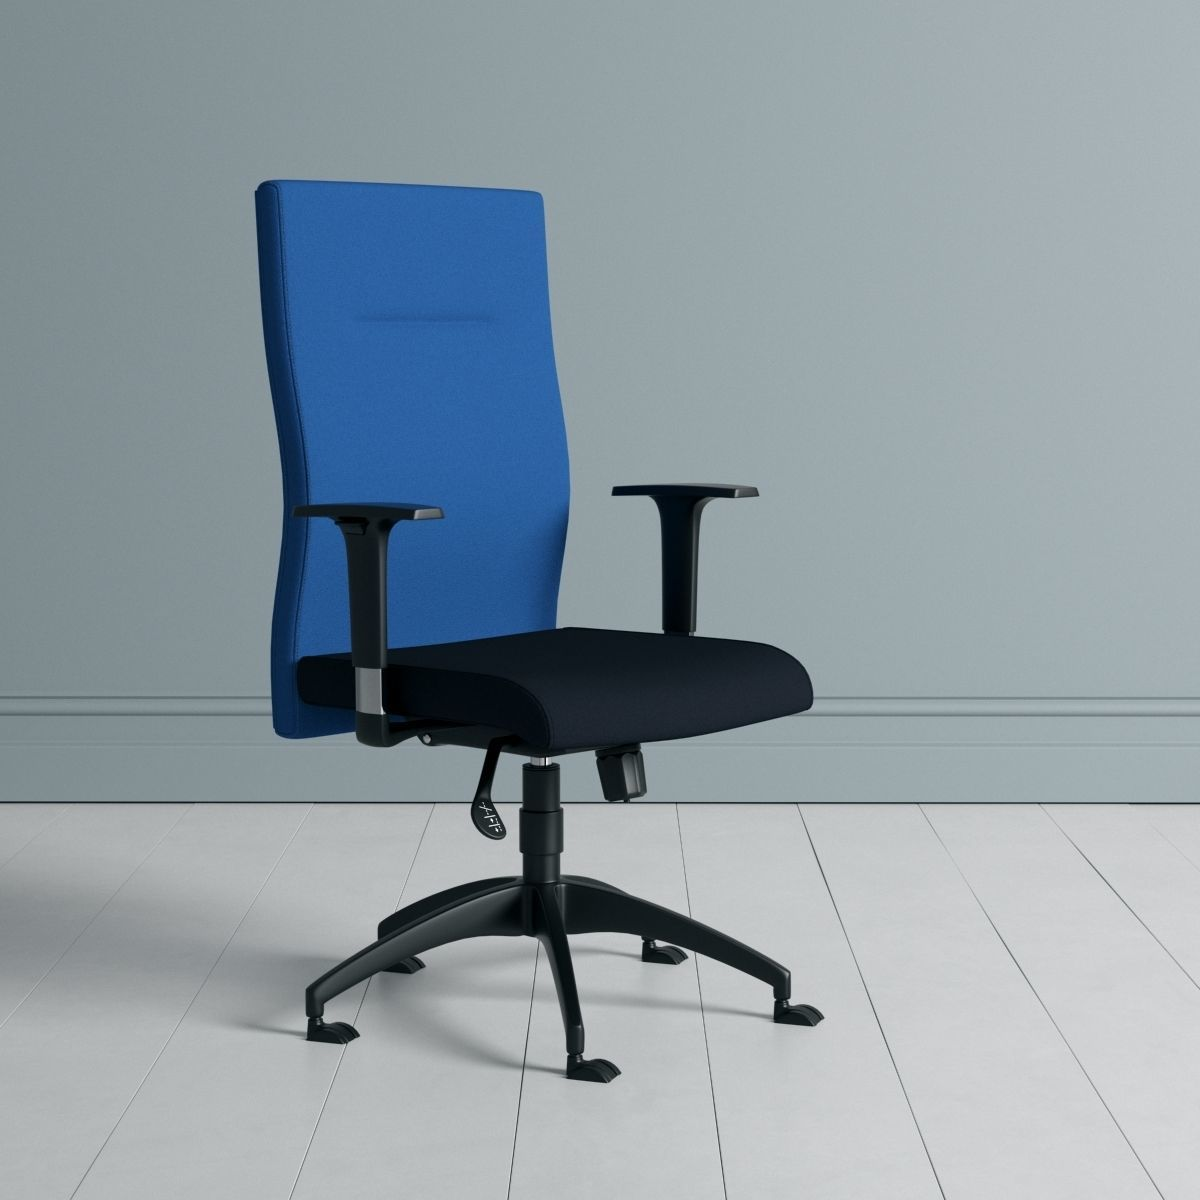 Fluent Office Manager and Visitor Chair